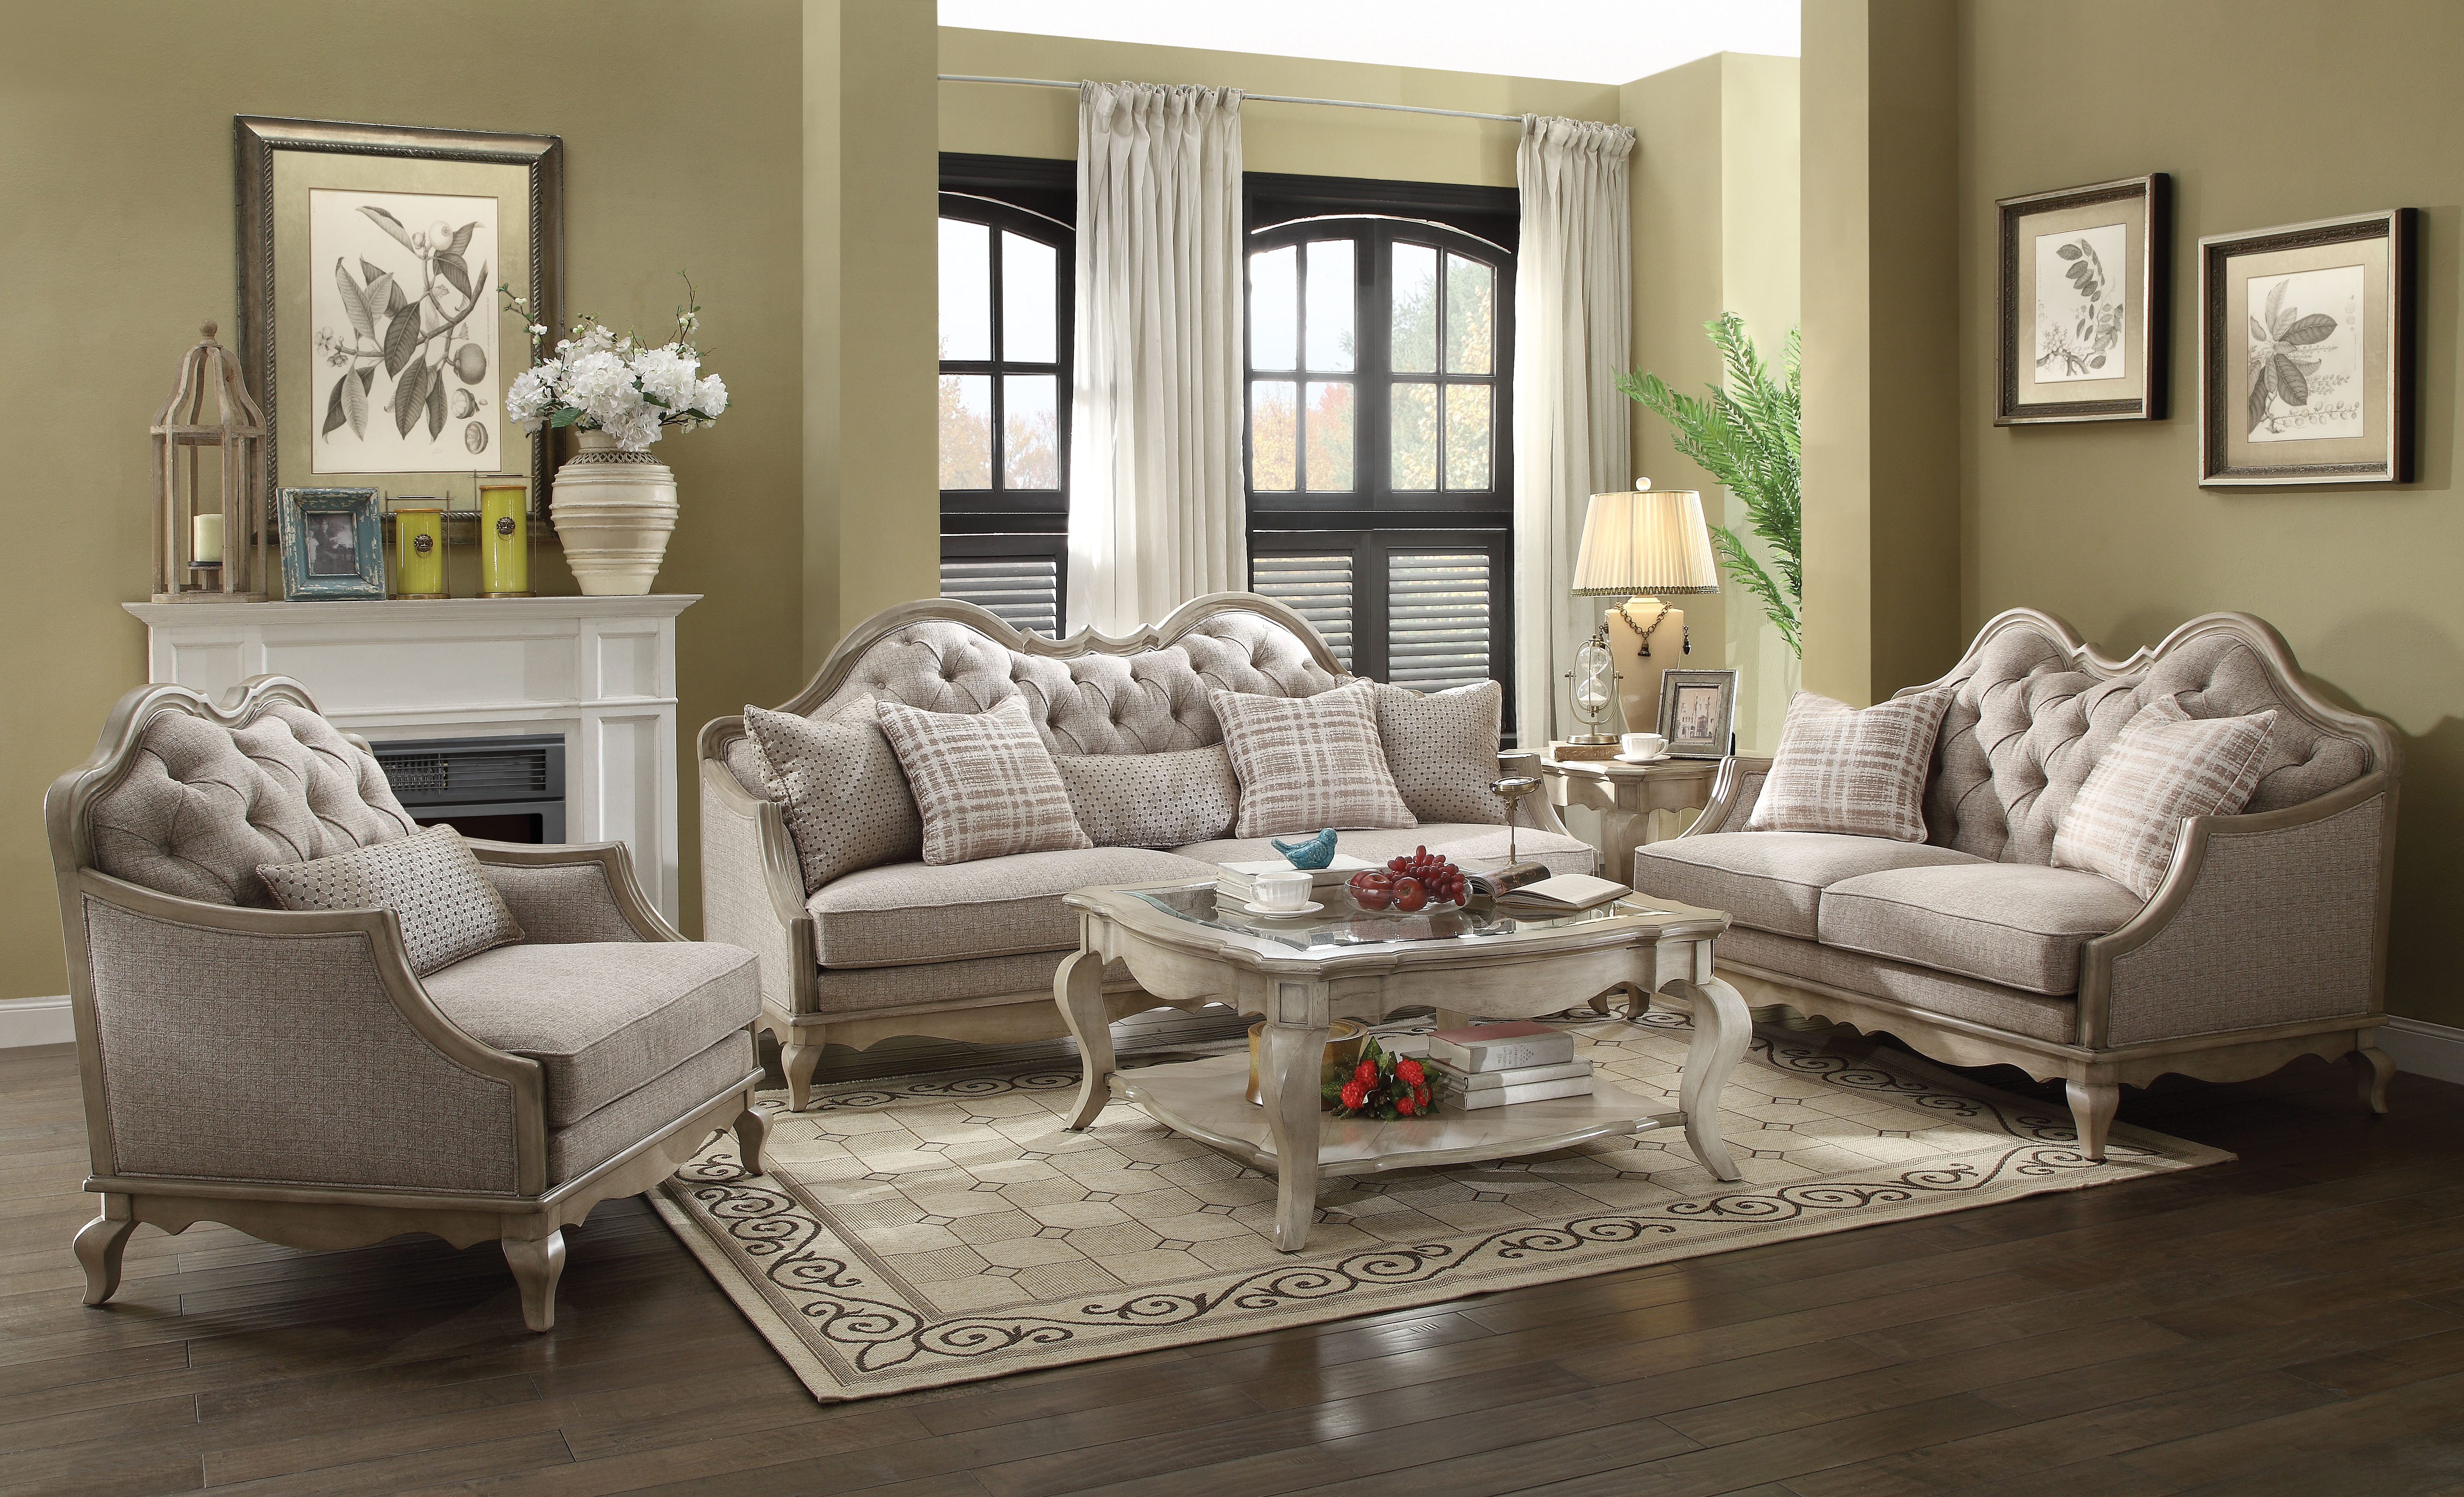 King Of Chairs Chelmsford Antique Taupe & Beige Fabric Chair W/1 Pillow regarding Newest Chelmsford 3 Piece Dining Sets